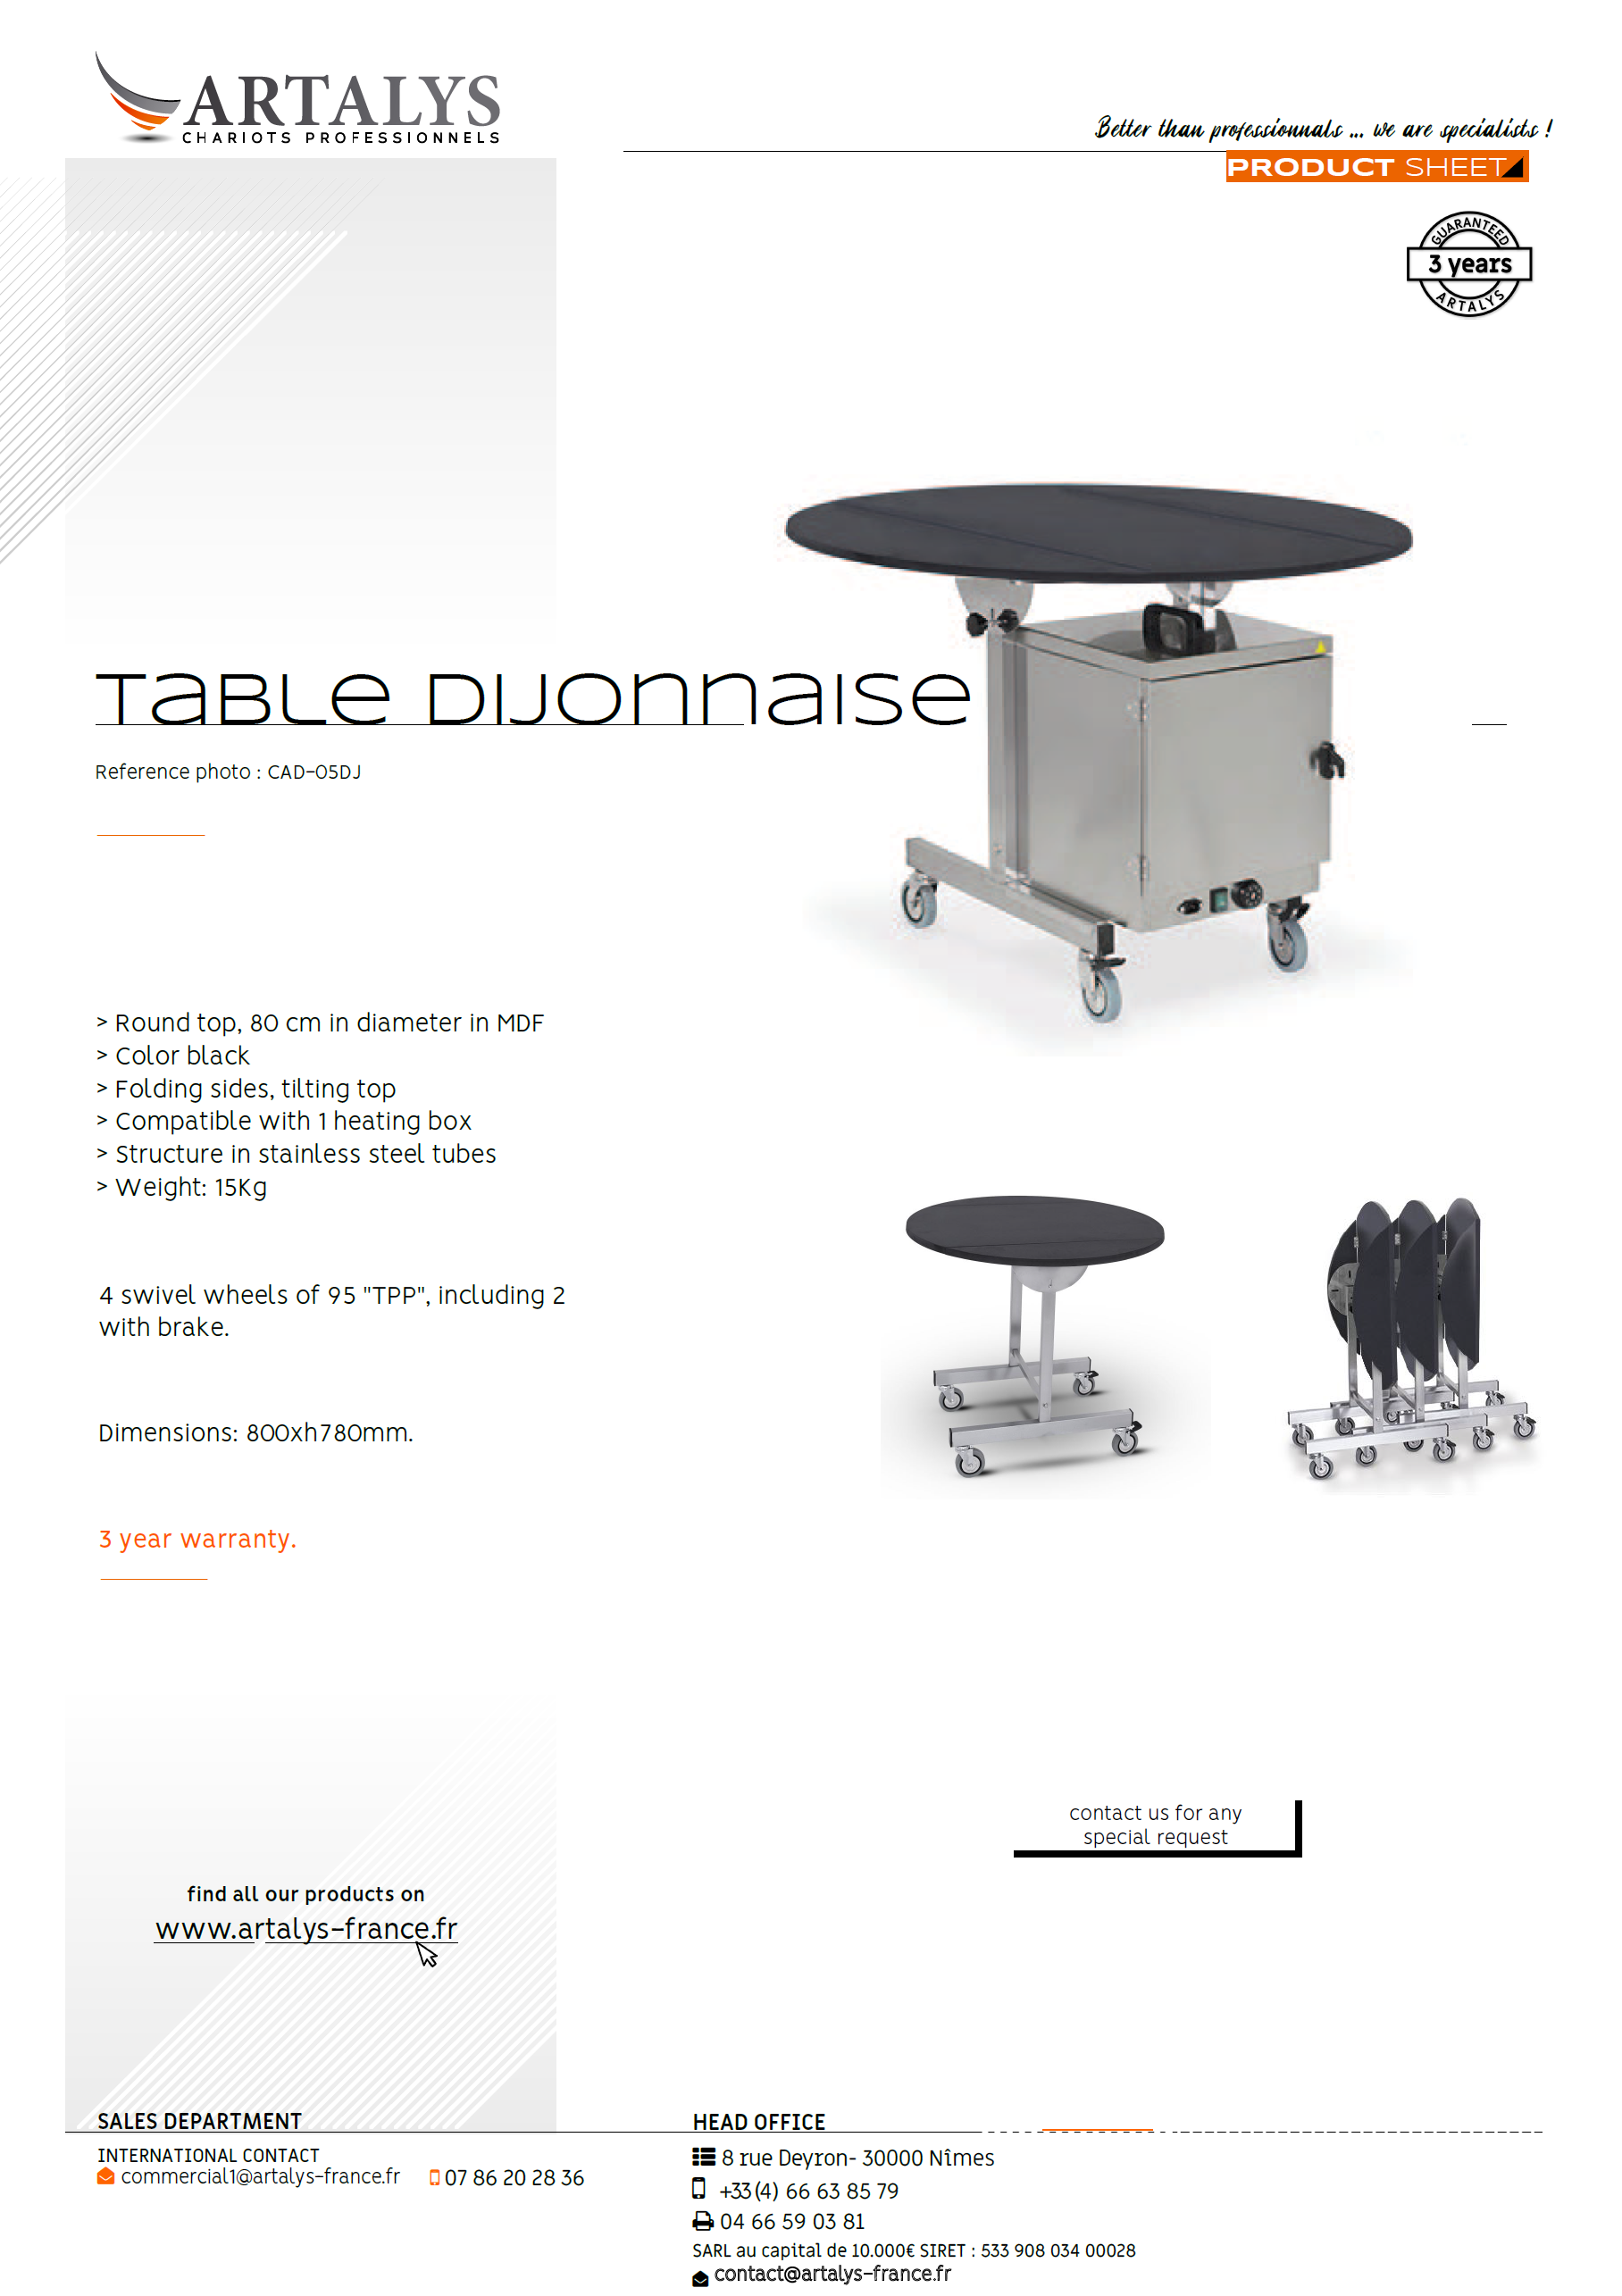 Product sheet of the Dijonnaise room-service table